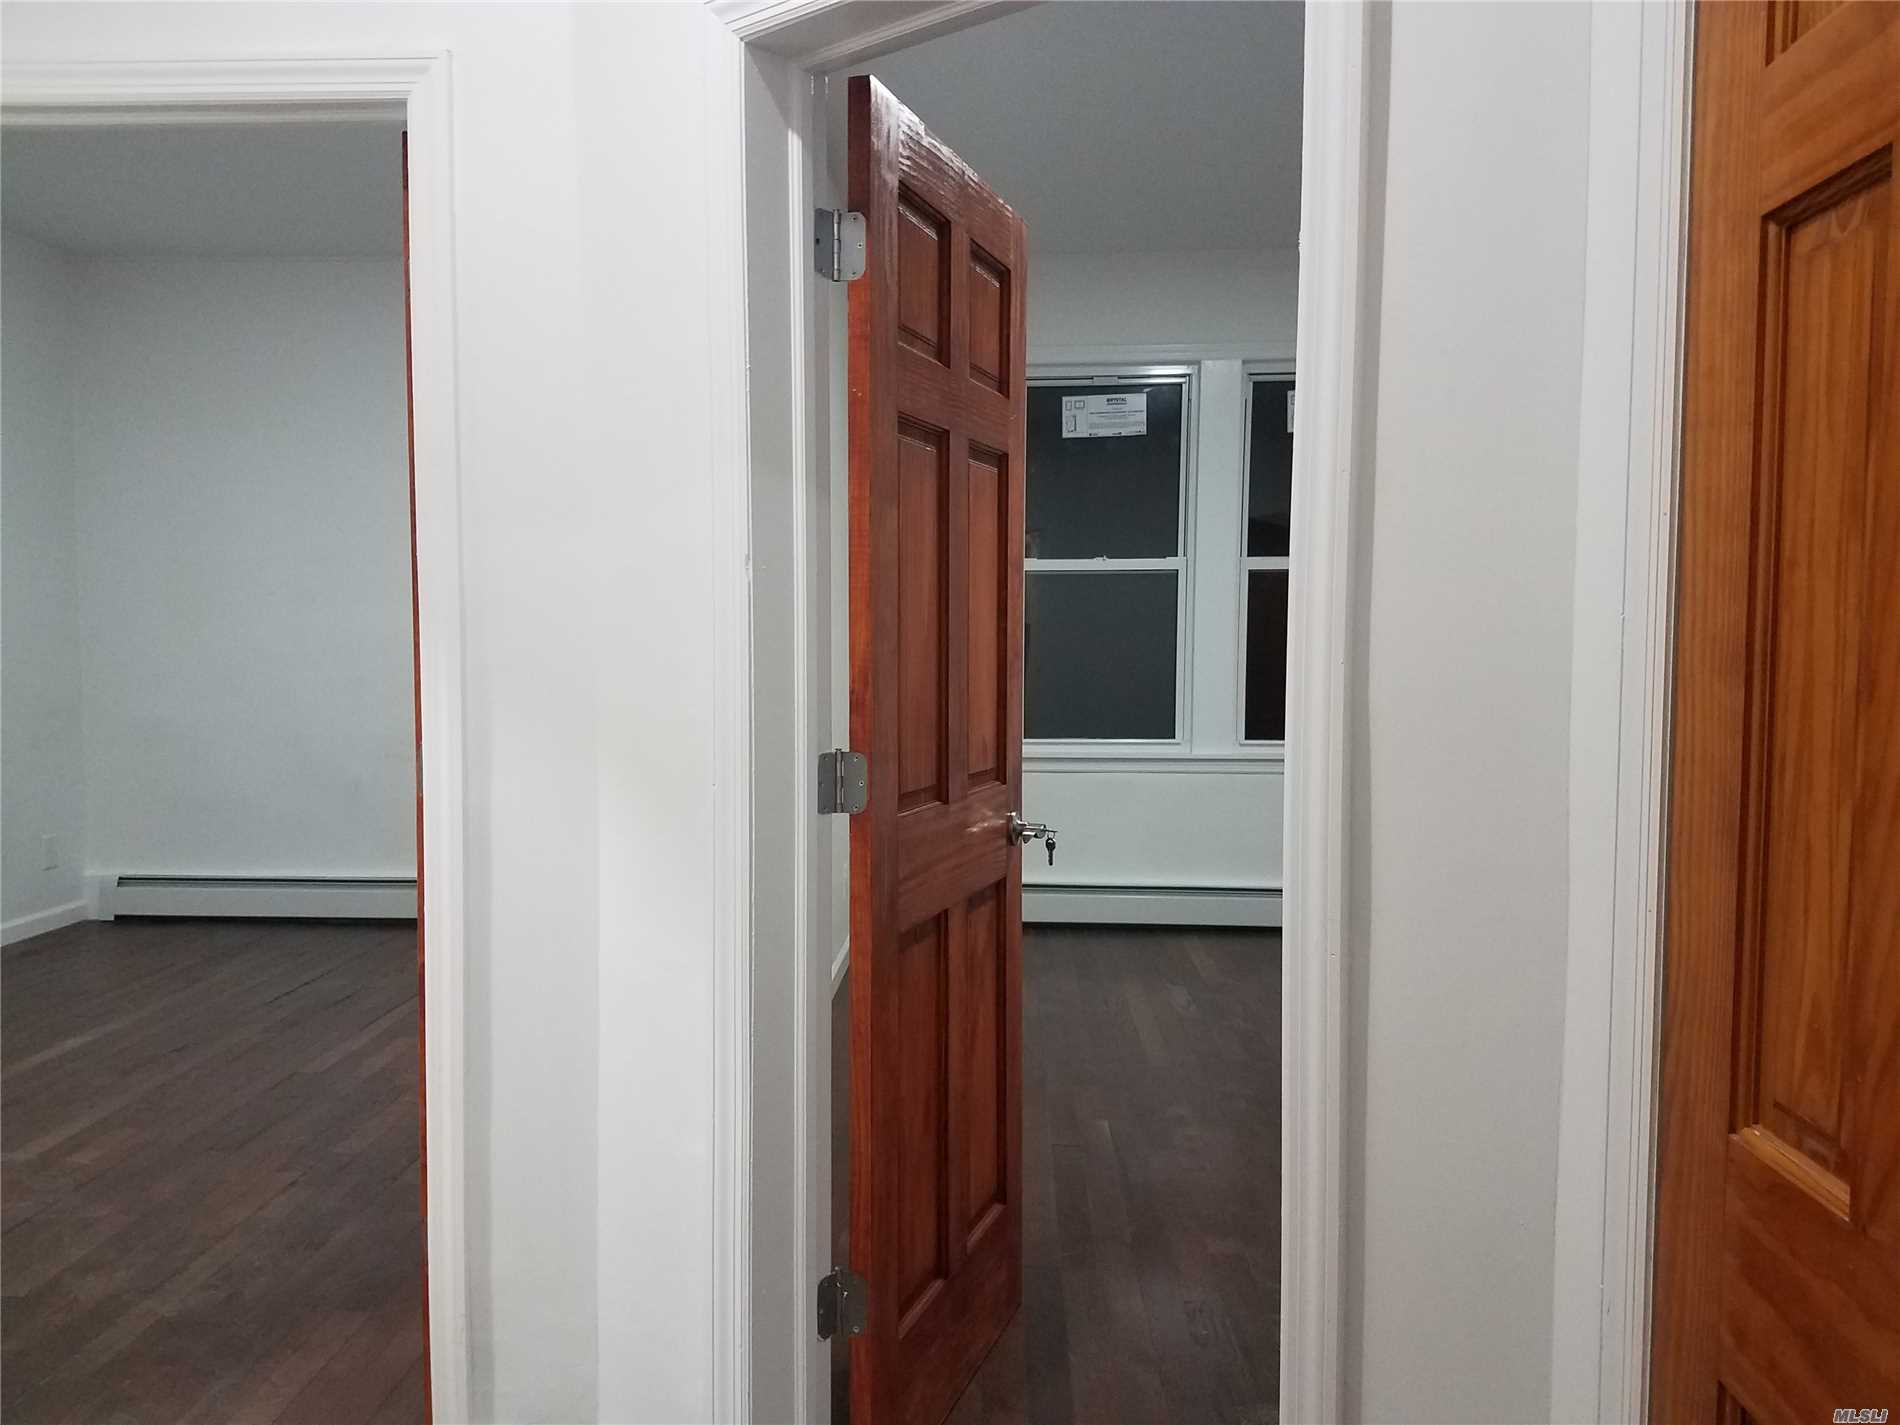 Totally 100% Renovated 3 Br Duplex Apartment - 2nd Floor And Attic Together. Huge Bedrooms With Big Closets. The Kitchen Has All New Stainless Steel Appliances, Stone Counter-Top. Beautiful Modern Tiles In The Bathroom. New Hardwood Floors All Through The Apartment.